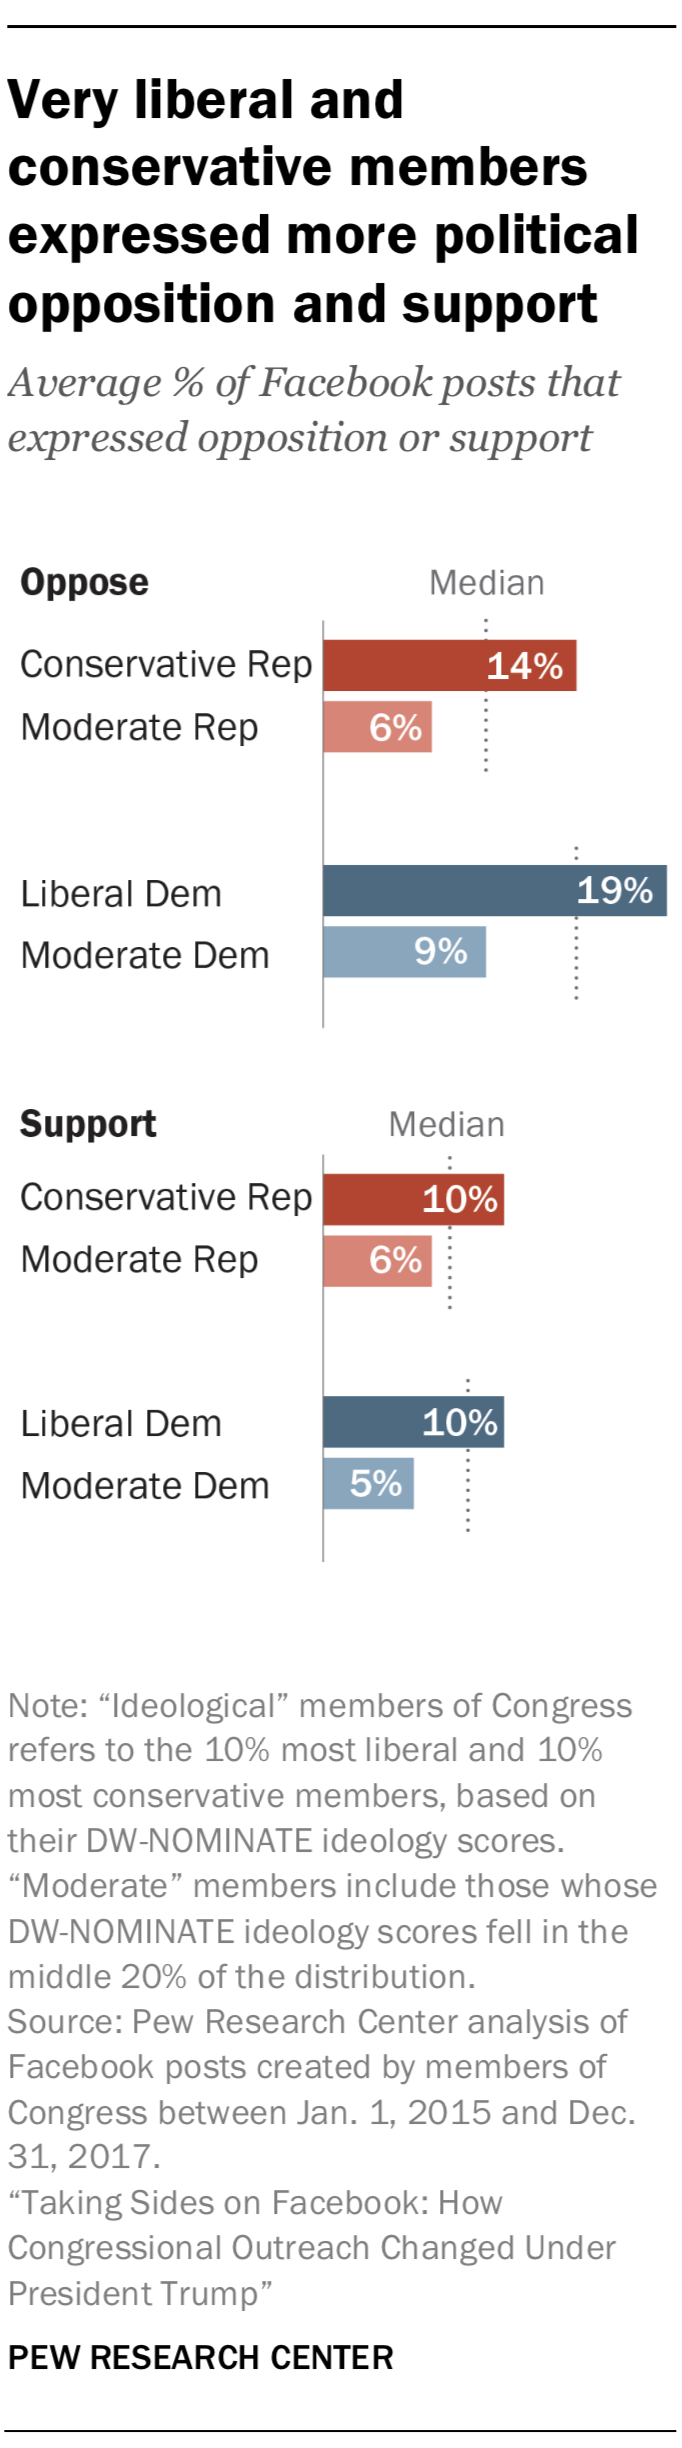 Very liberal and conservative members expressed more political opposition and support